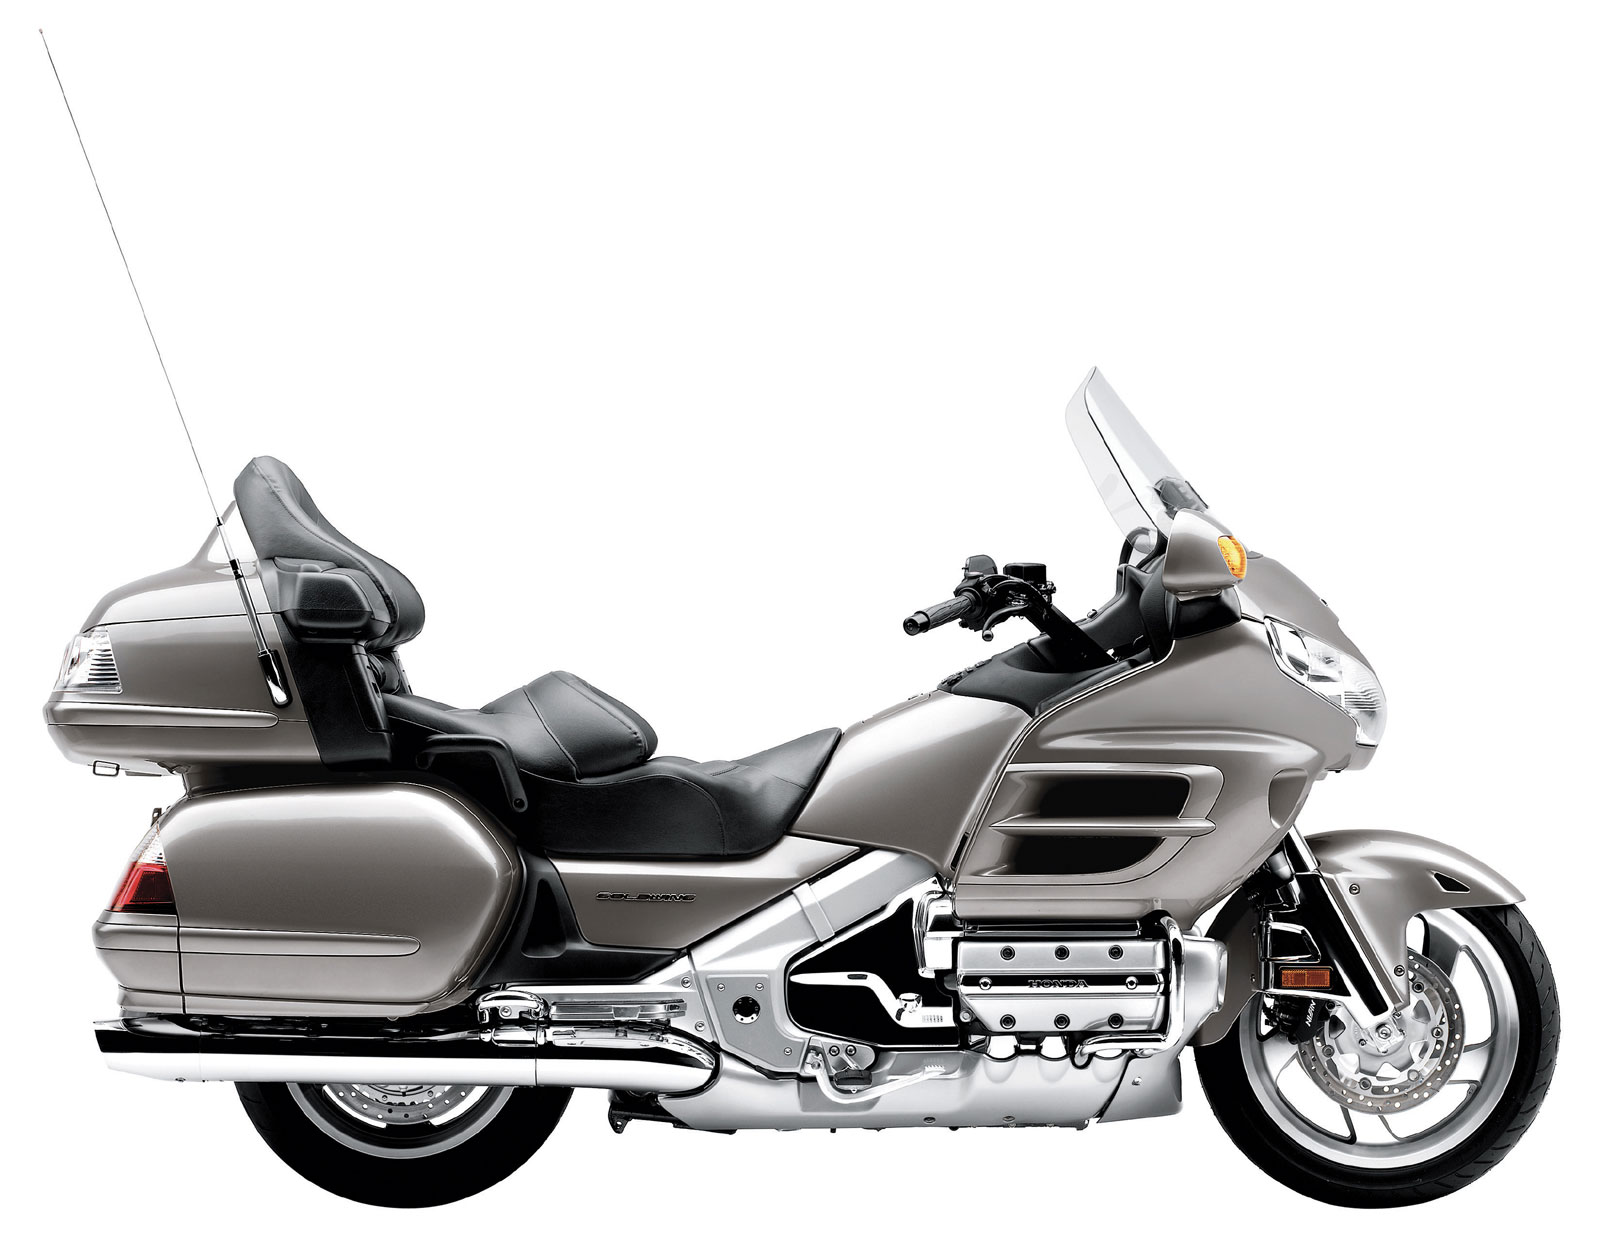 Honda GL 1800 Gold Wing 2004 images #82718